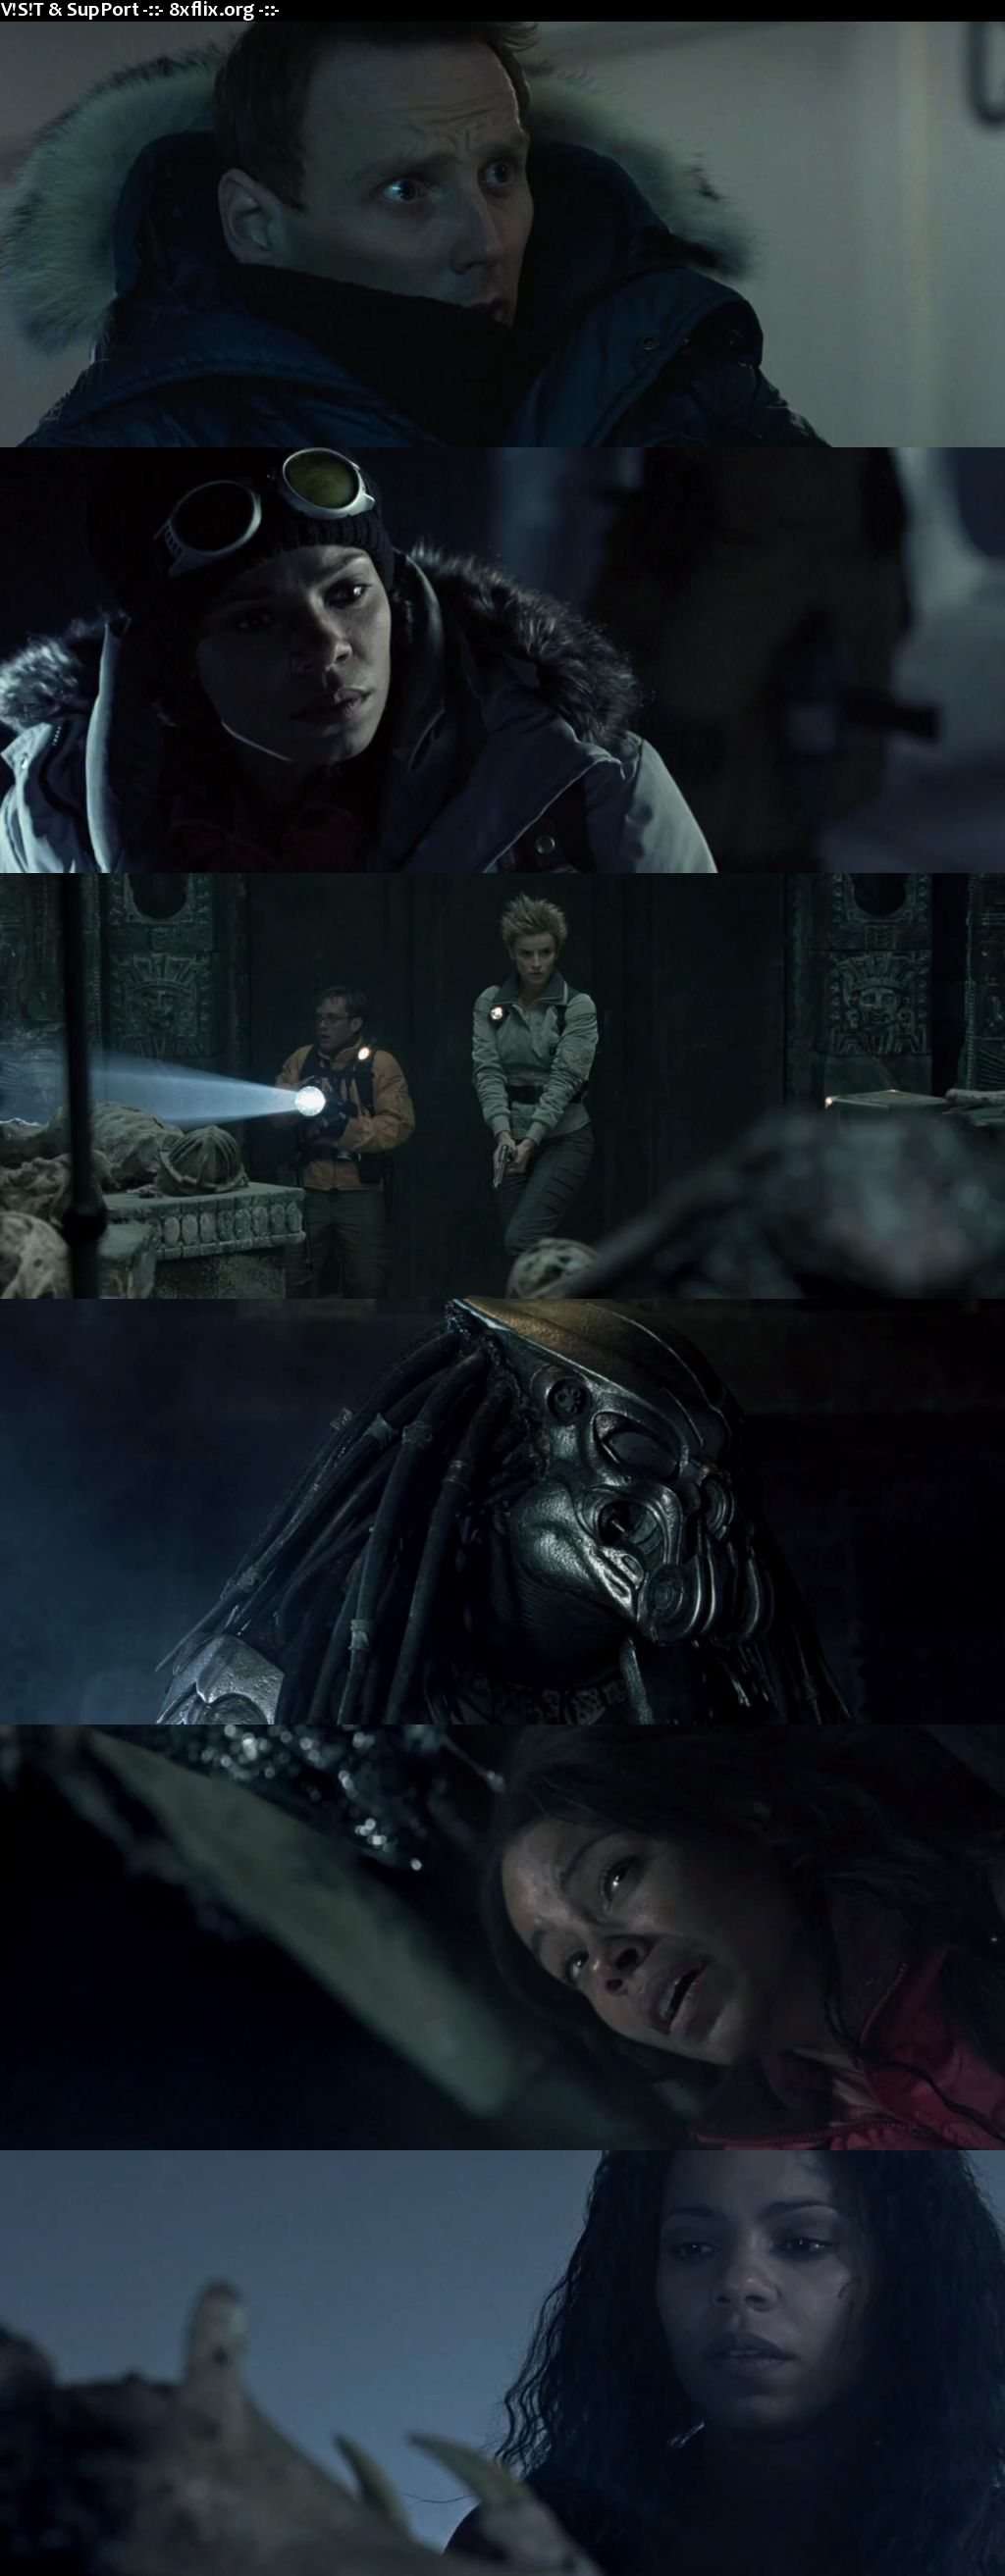 Alien Vs Predator 2004 Hindi English Dual Audio 720p 480p BluRay